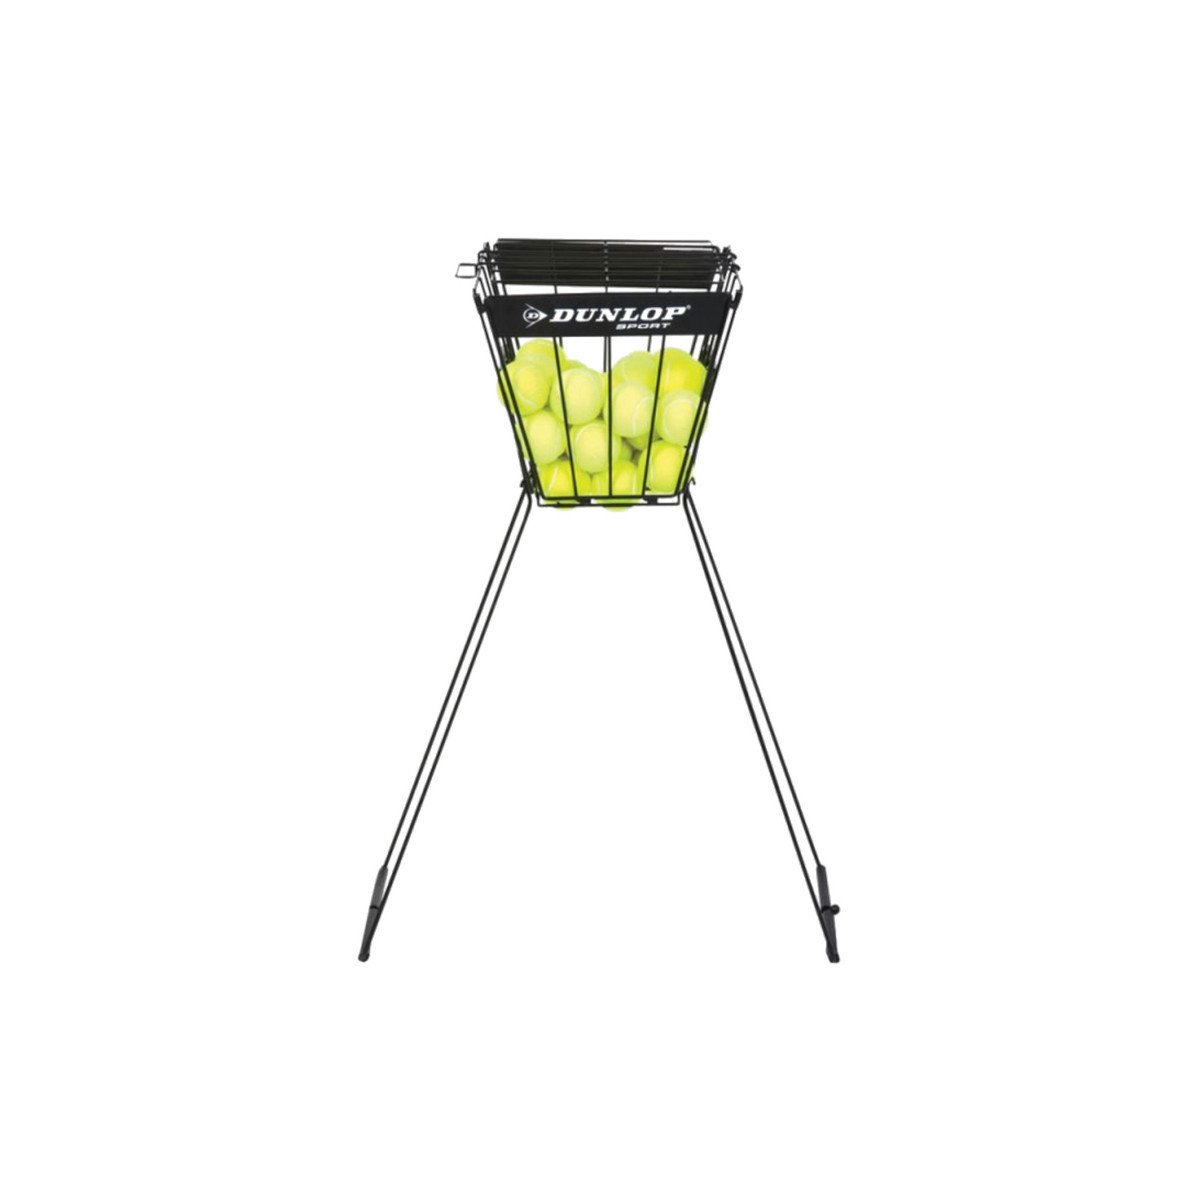 Dunlop Tennis Accessories – Ball Hopper (70 Balls)